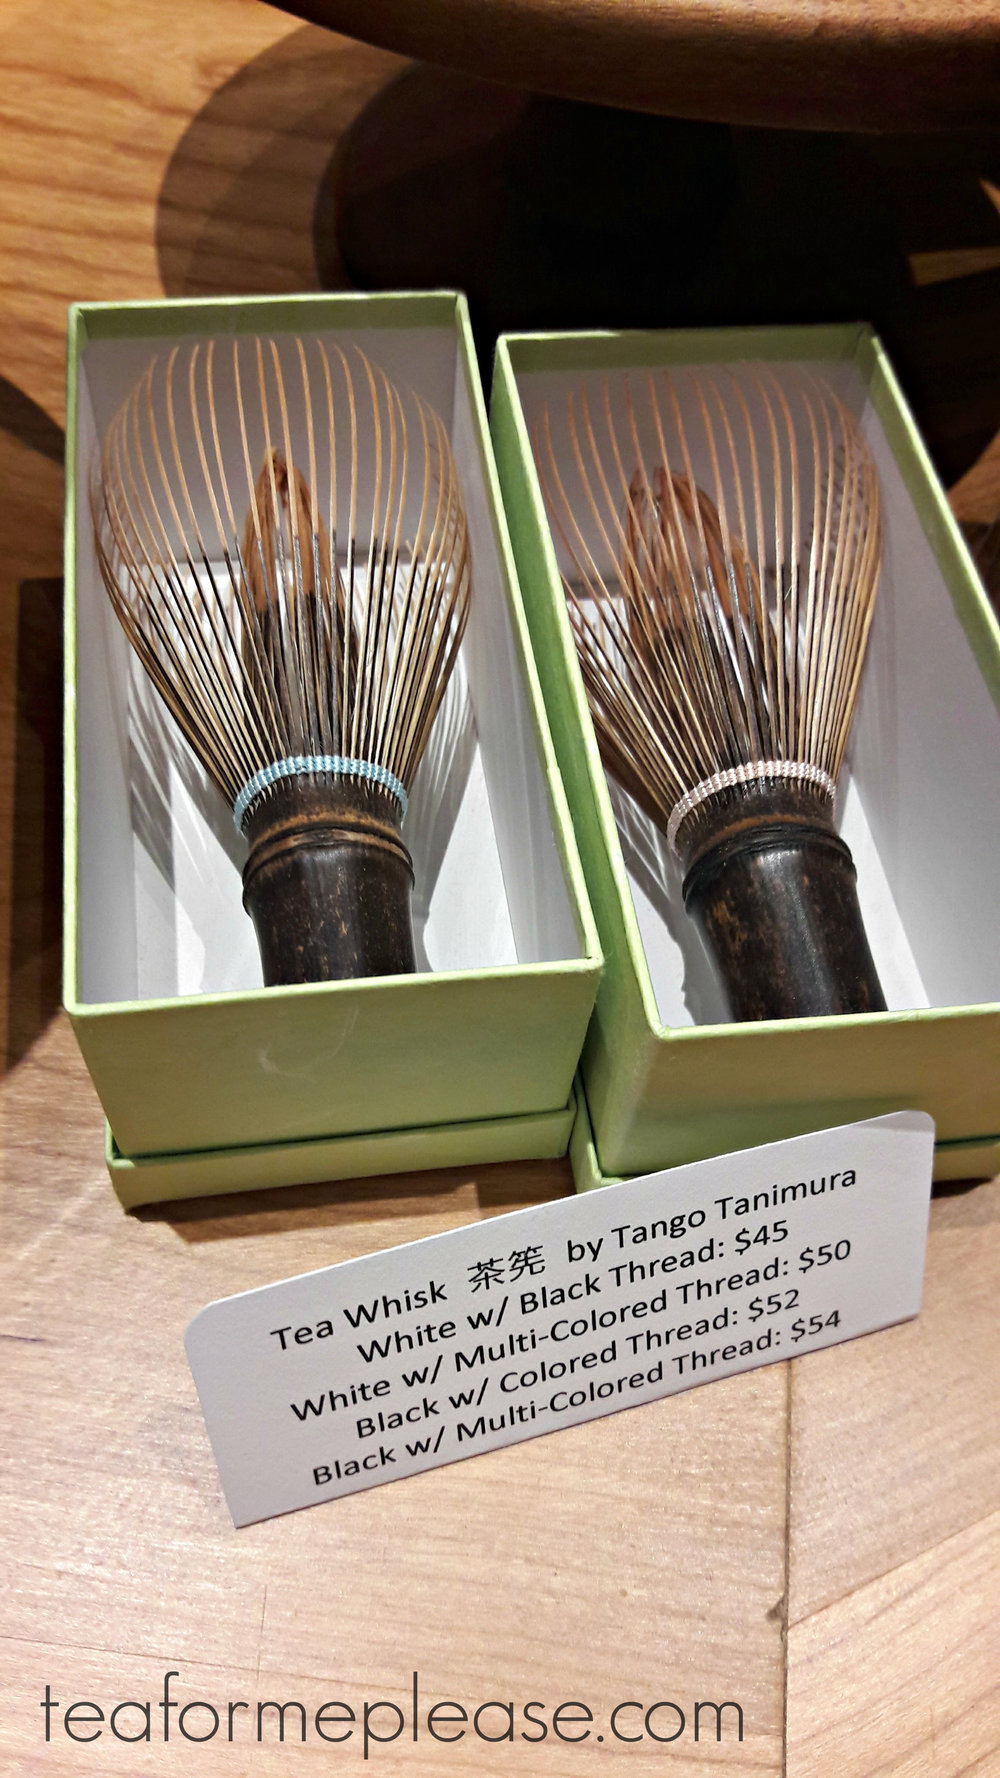 These whisks are beautiful!